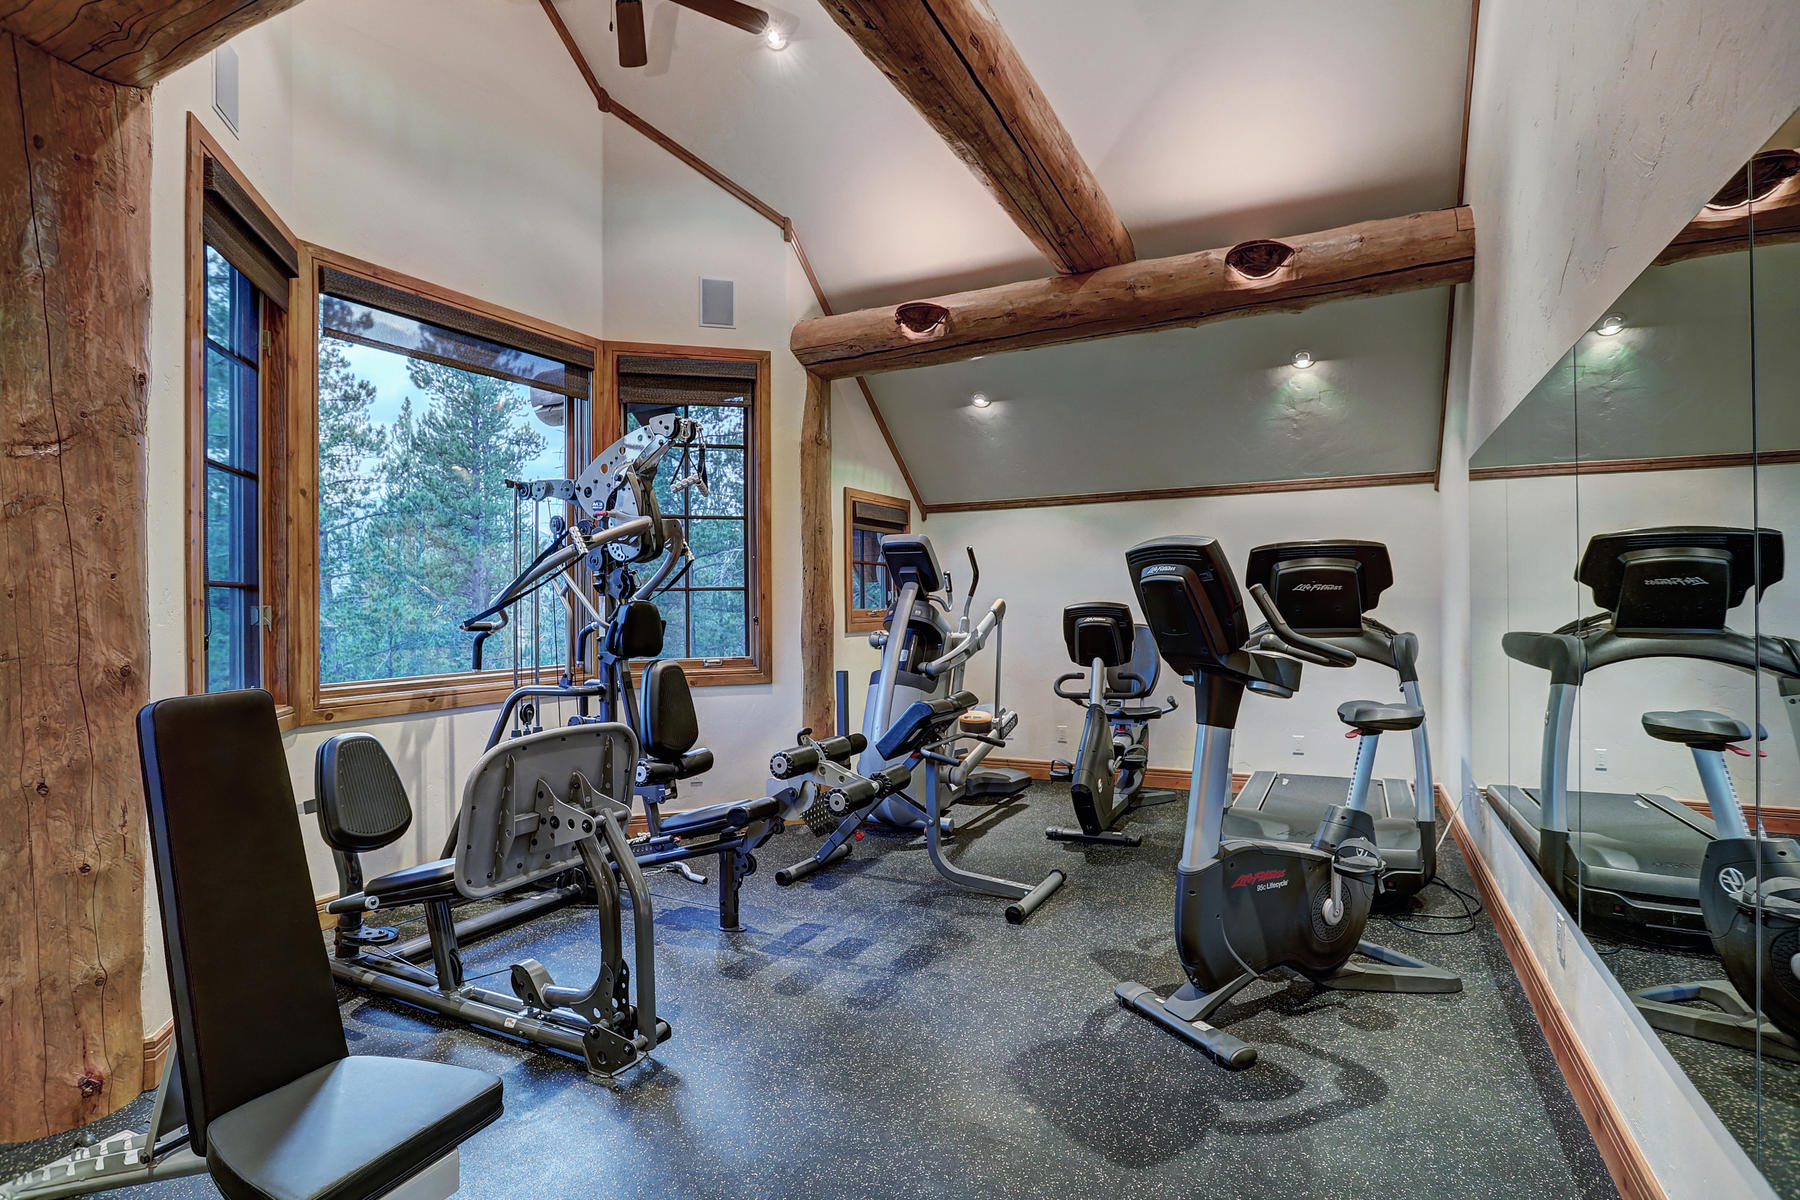 Additional photo for property listing at Spruce Valley Dream Home 773 Indiana Creek Road Breckenridge, Colorado 80424 United States